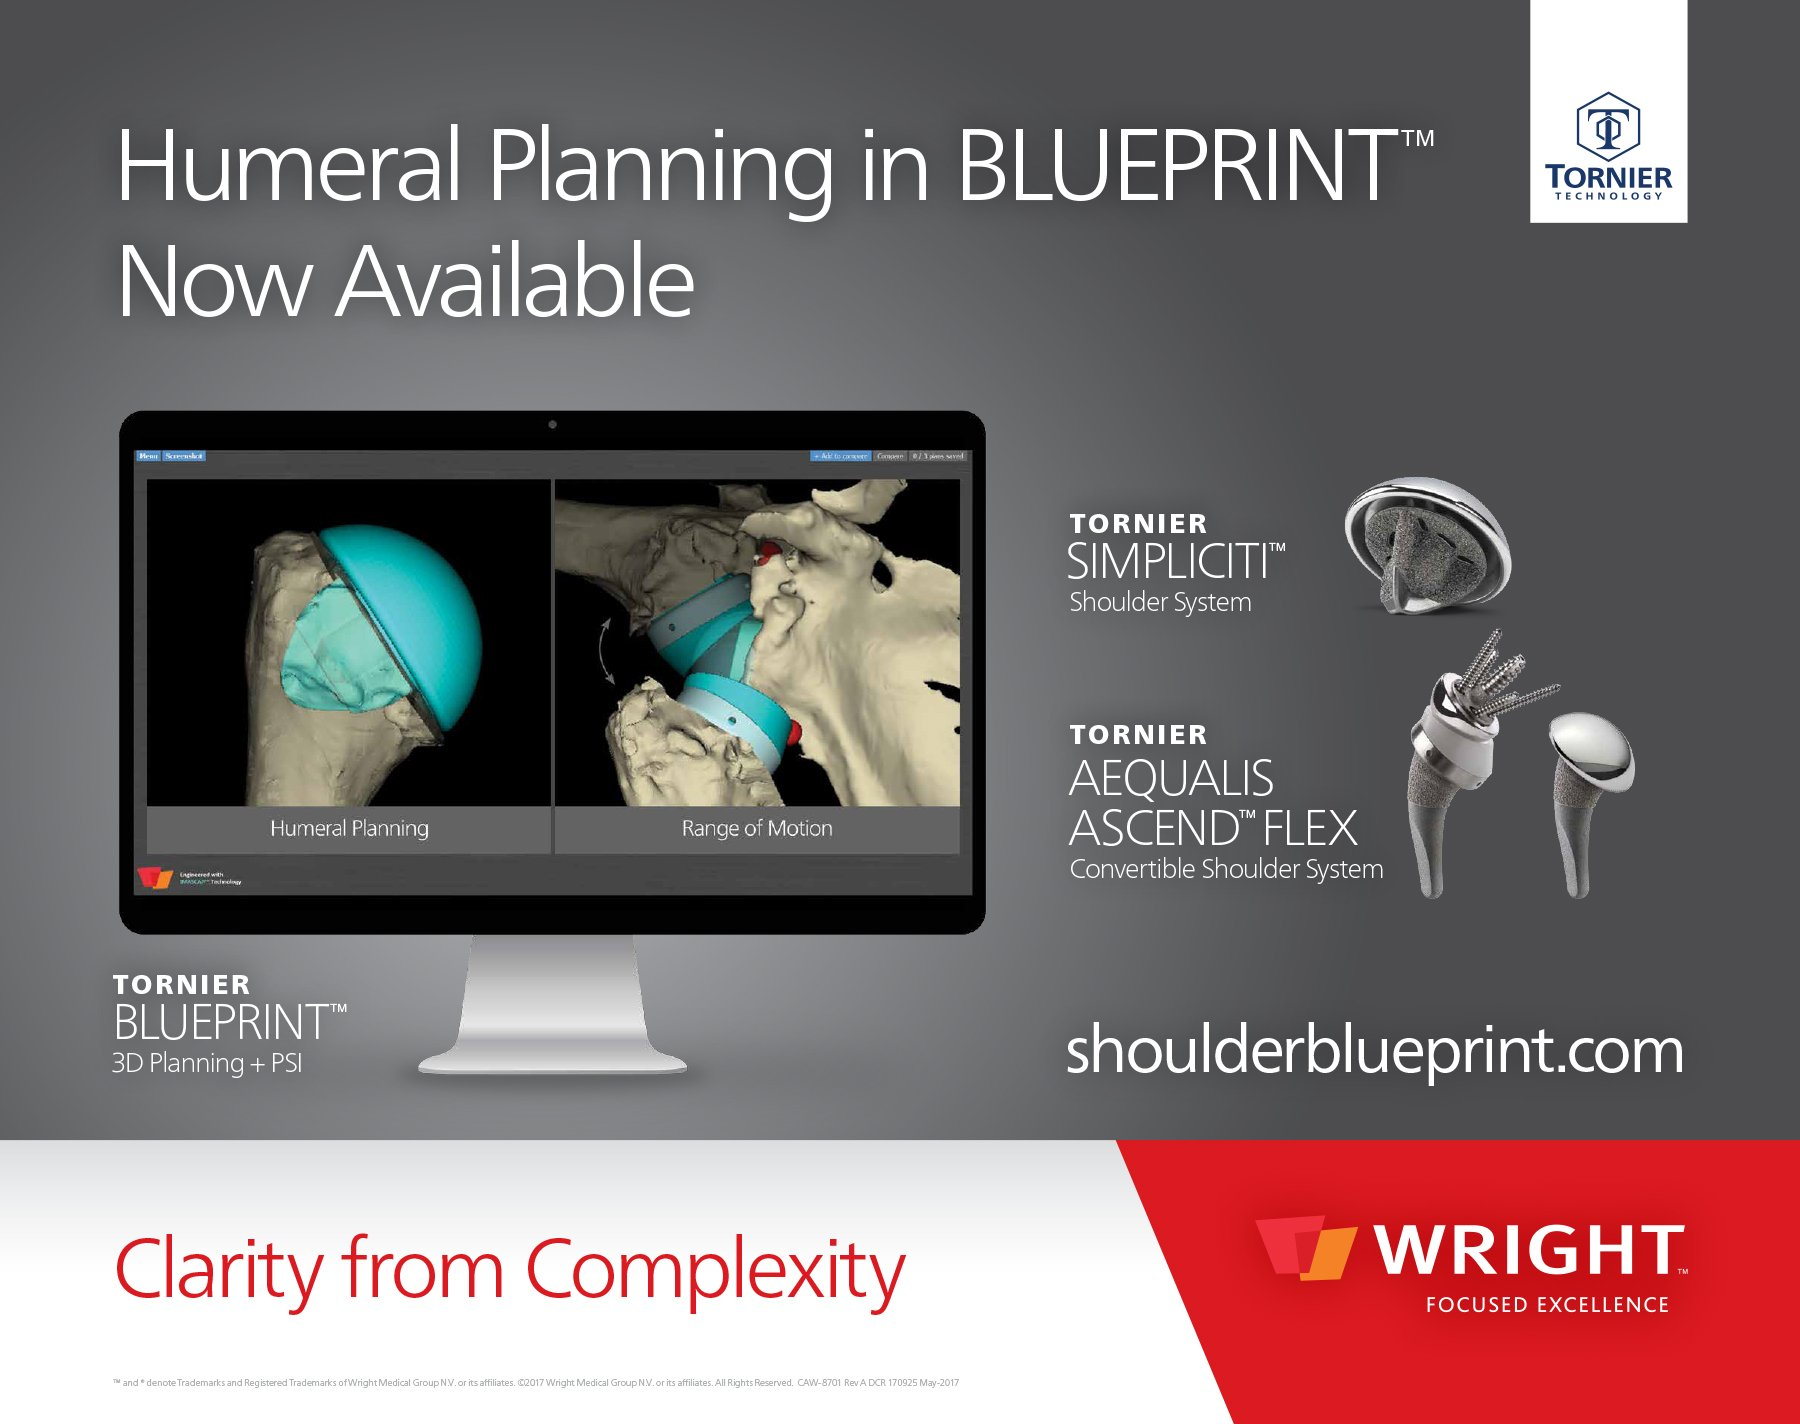 Wright medical on twitter demo blueprint 3d planning psi at the wright medical on twitter demo blueprint 3d planning psi at the san diego shoulder course june 14 17 2017 malvernweather Choice Image